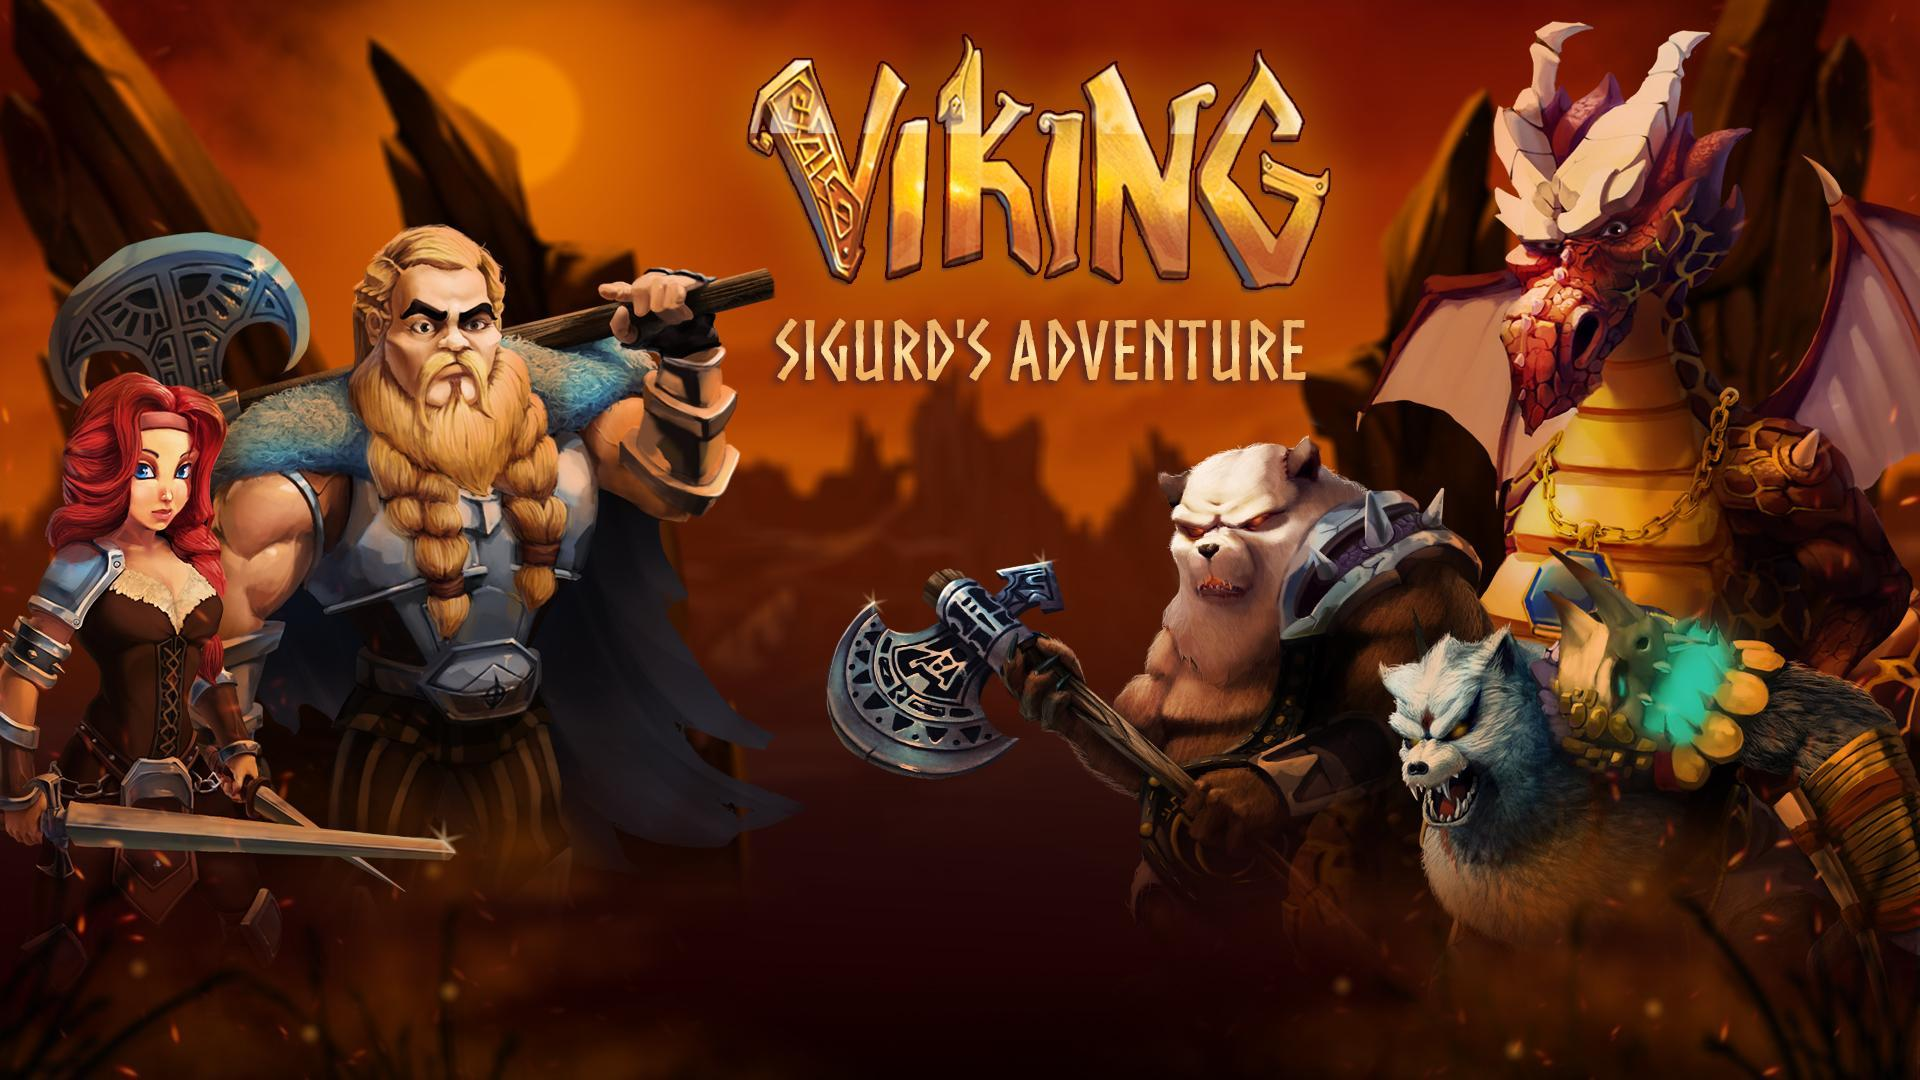 Viking: Sigurd's Adventure for Android - APK Download